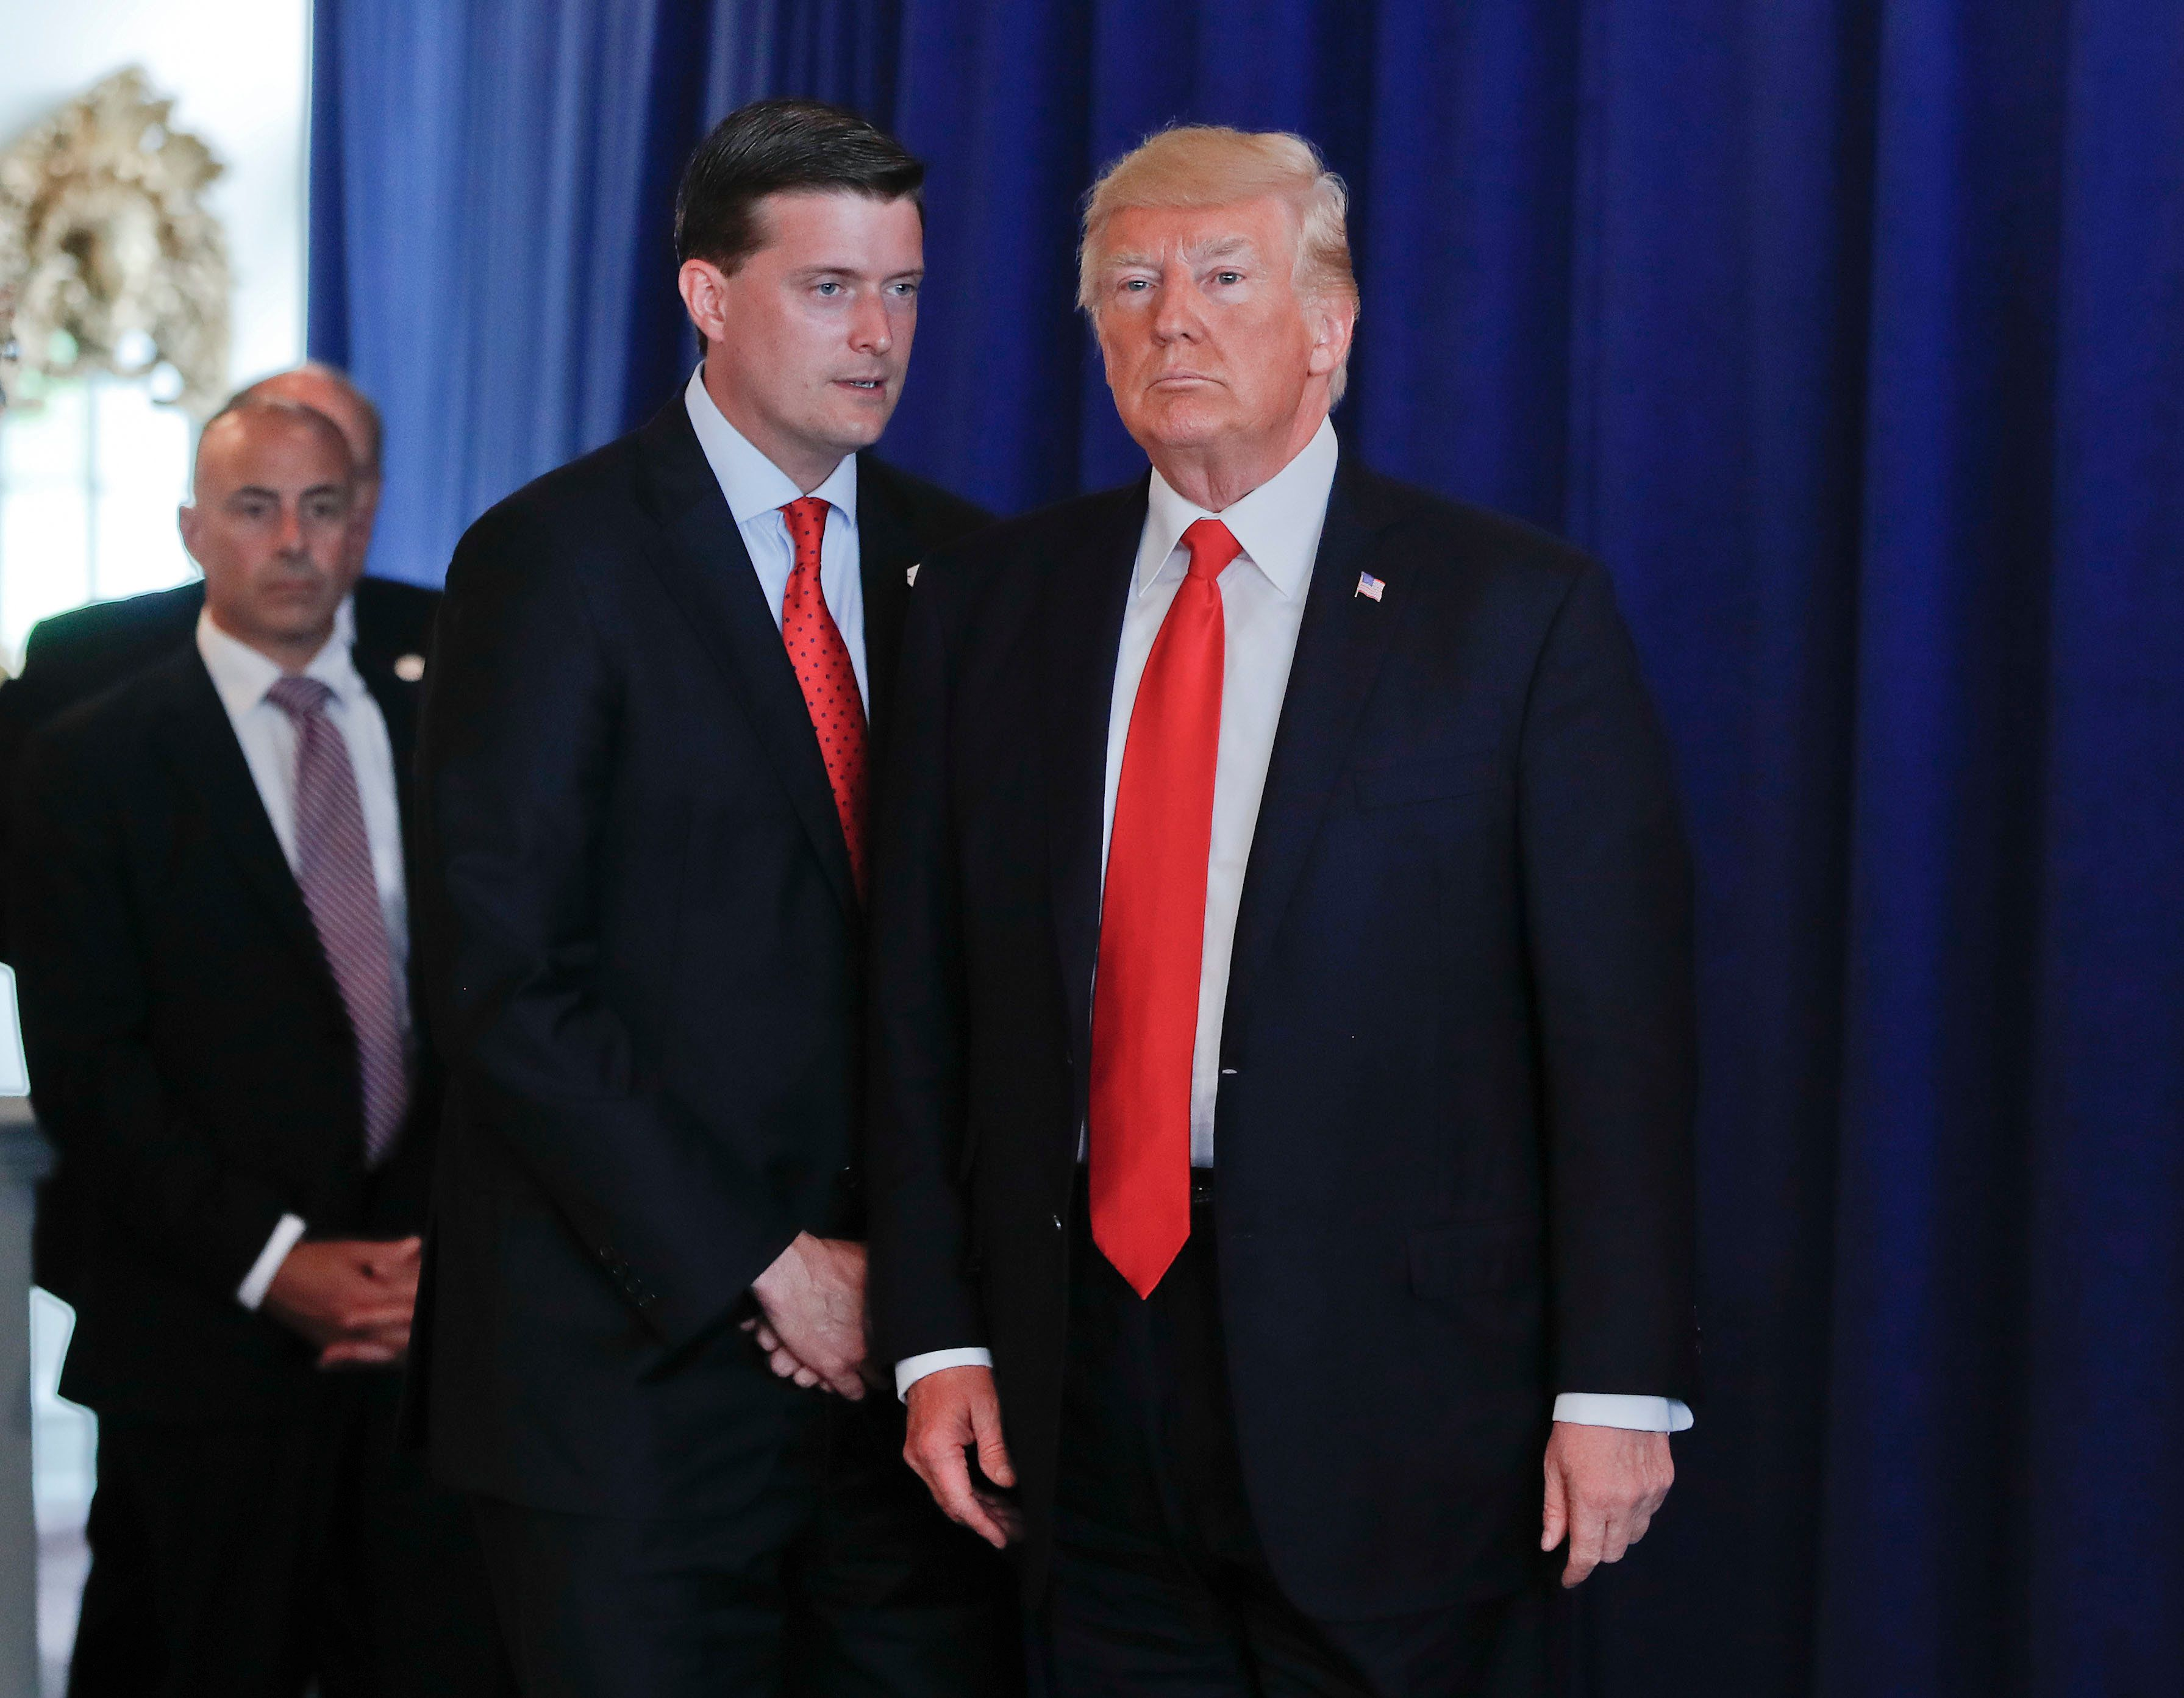 Rob Porter, left, White House Staff Secretary speaks to President Donald Trump after Trump made remarks regarding the on going situation in Charlottesville, Va., Saturday, Aug. 12, 2017 at Trump National Golf Club in Bedminister, N.J. Porter reminded Trump that he still needed to sign the Veteran's Affairs Choice and Quality Employment Act of 2017. (AP Photo/Pablo Martinez Monsivais)